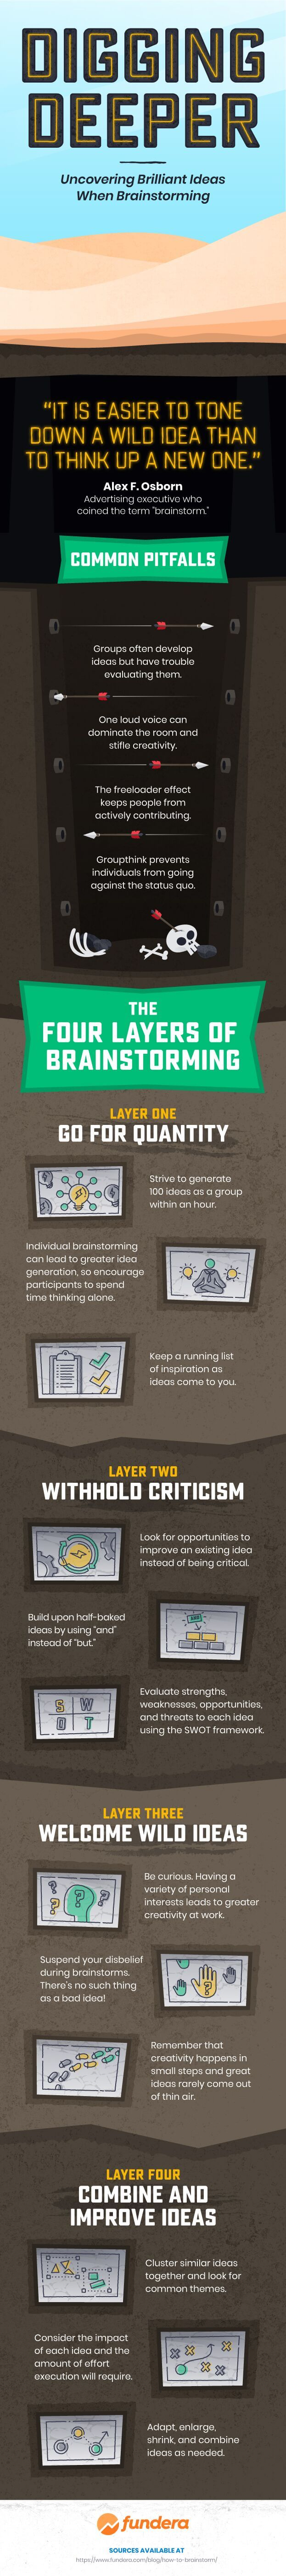 Infographic: Digging deeper — Uncovering brilliant ideas when brainstorming